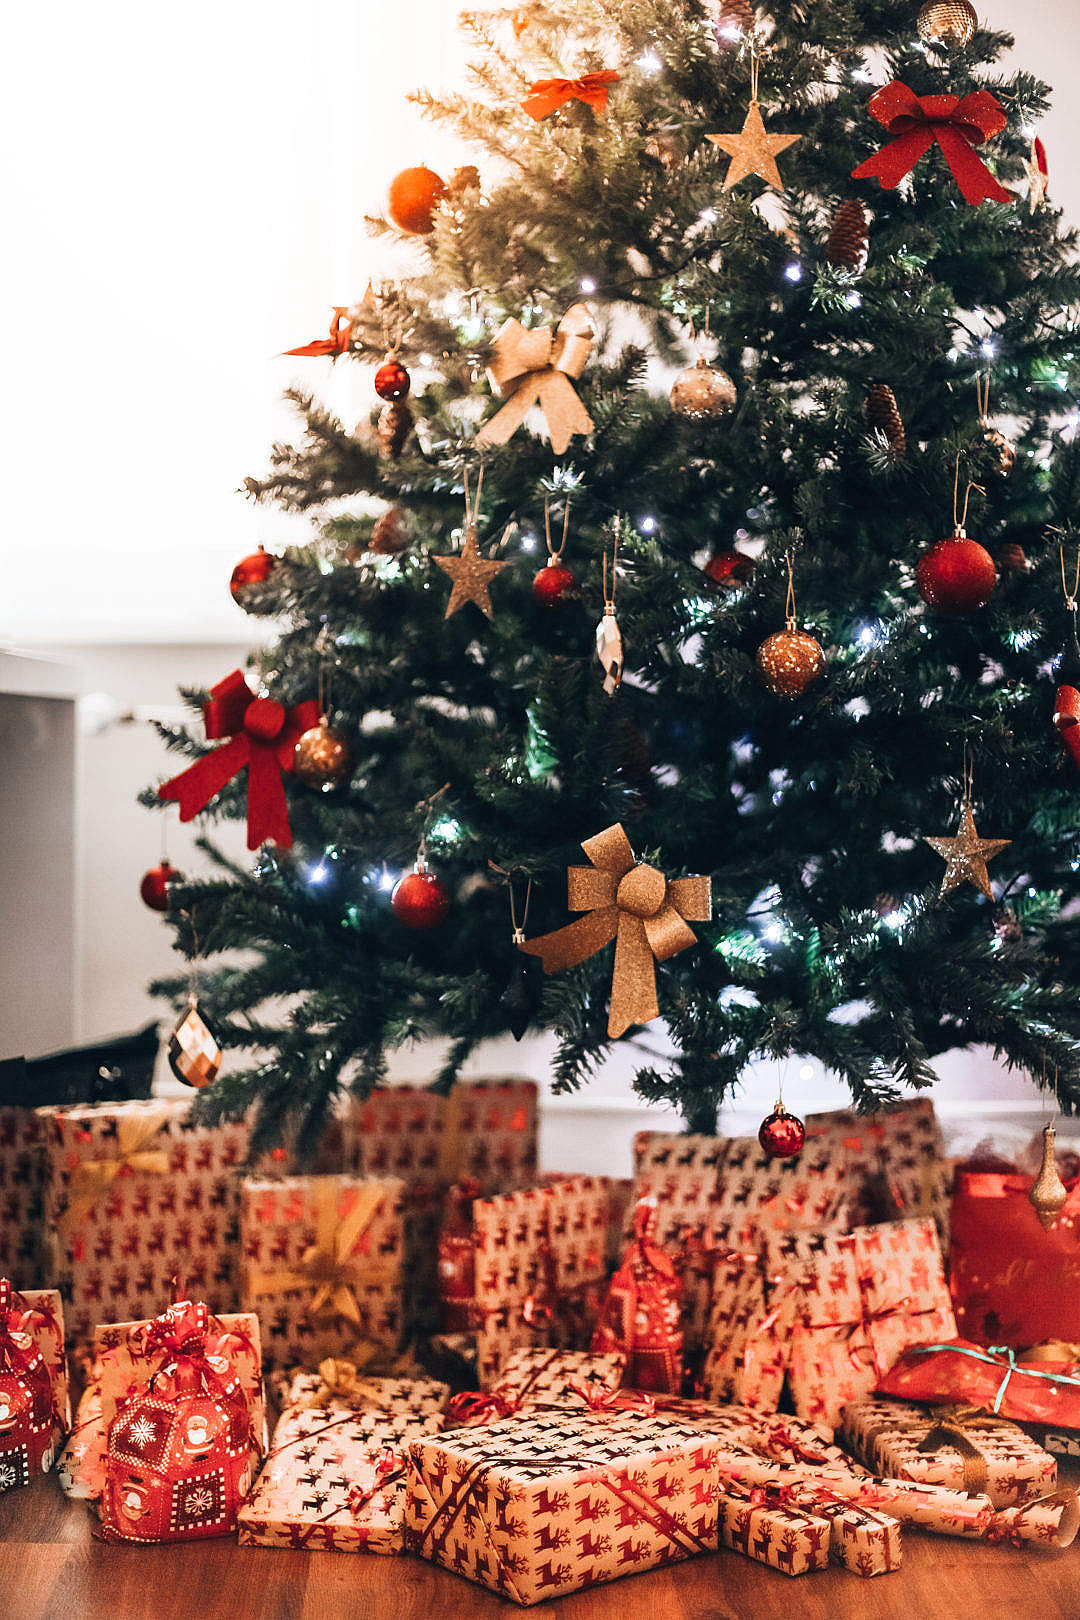 Download Christmas Tree with Presents Vertical FREE Stock Photo